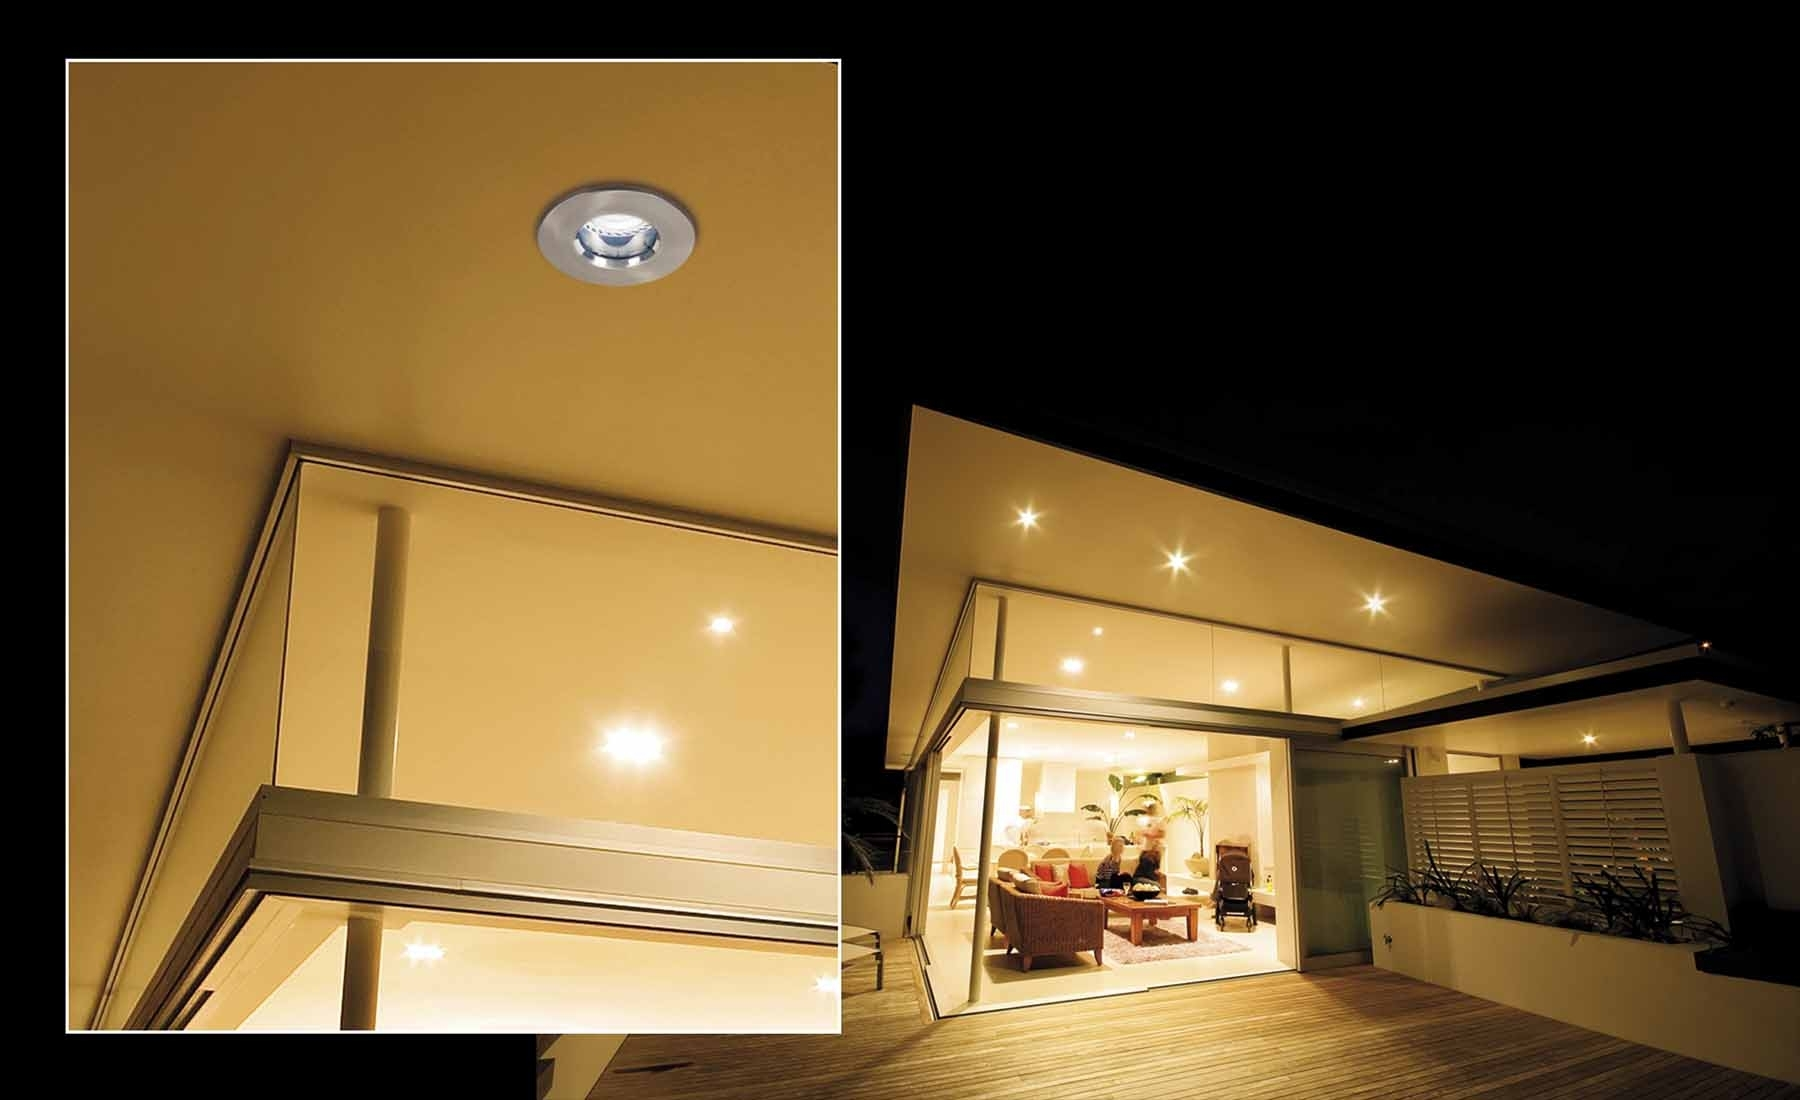 15 inspirations of outdoor recessed ceiling lighting fixtures - Recessed exterior lighting fixtures ...